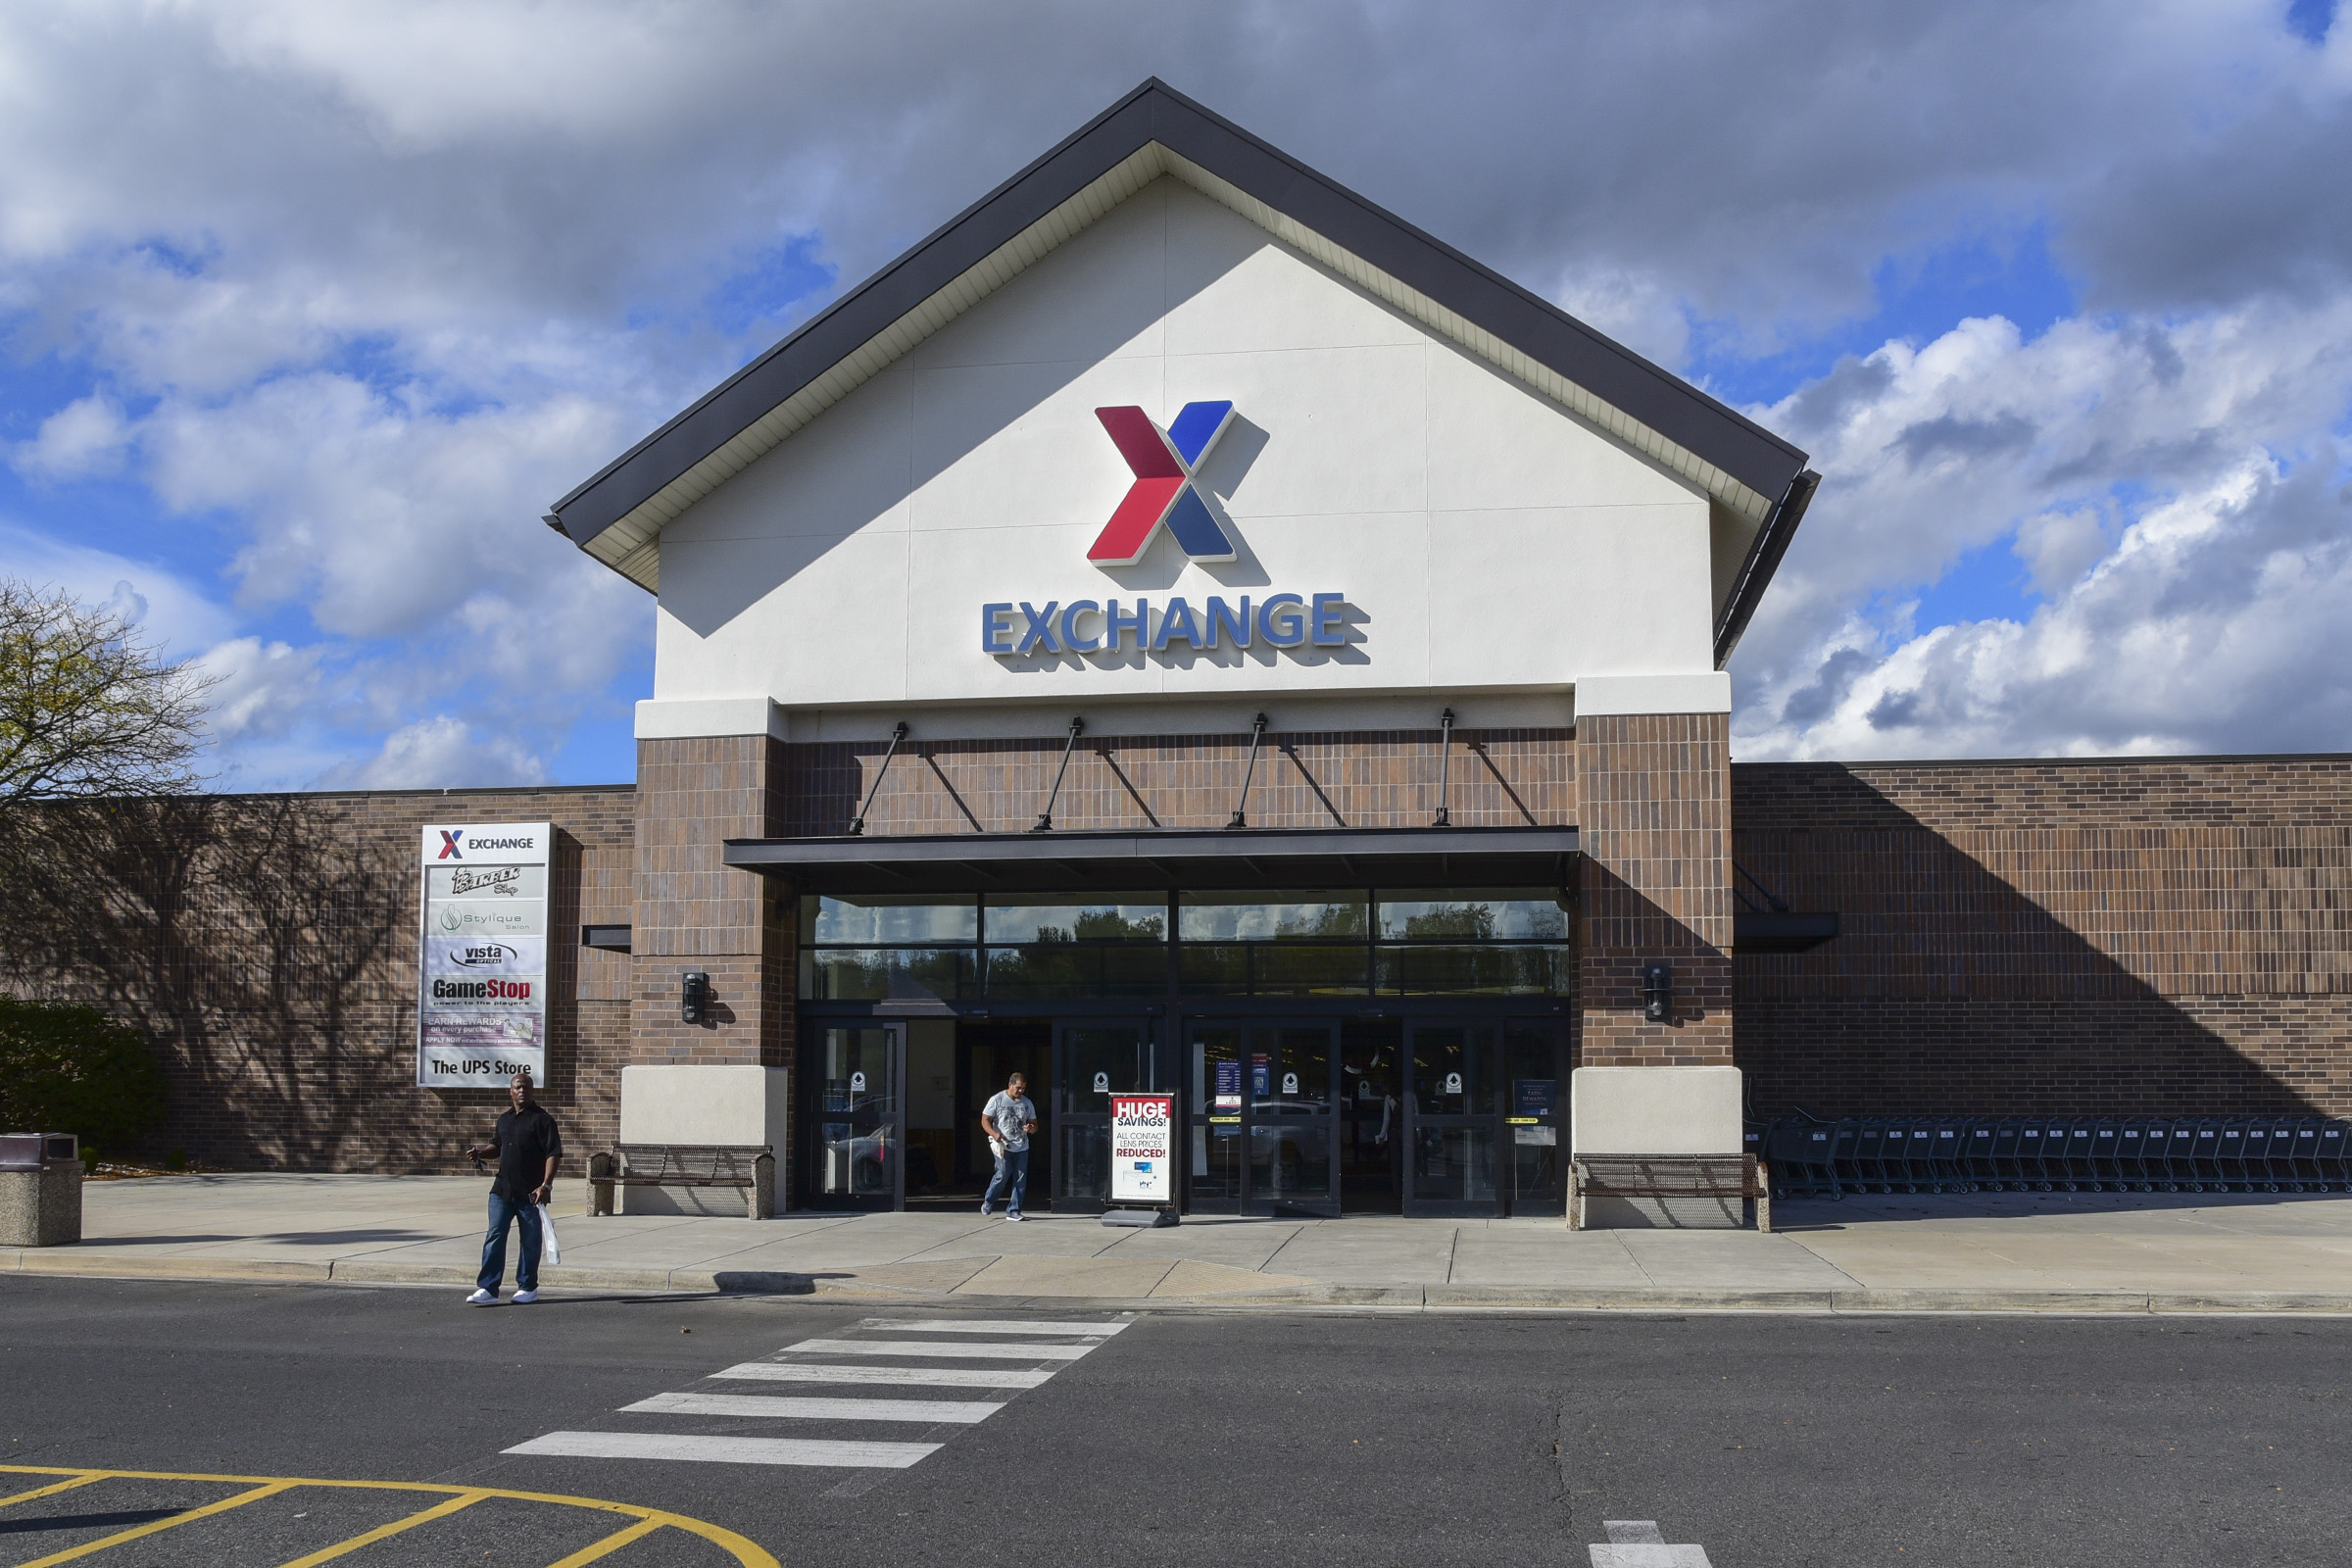 Honorably discharged veterans can shop online tax-free with any AAFES store, such as the one at Joint Base Maguire/Dix/Lakehurst,. The change tales effect this Saturday, on Veterans Day.